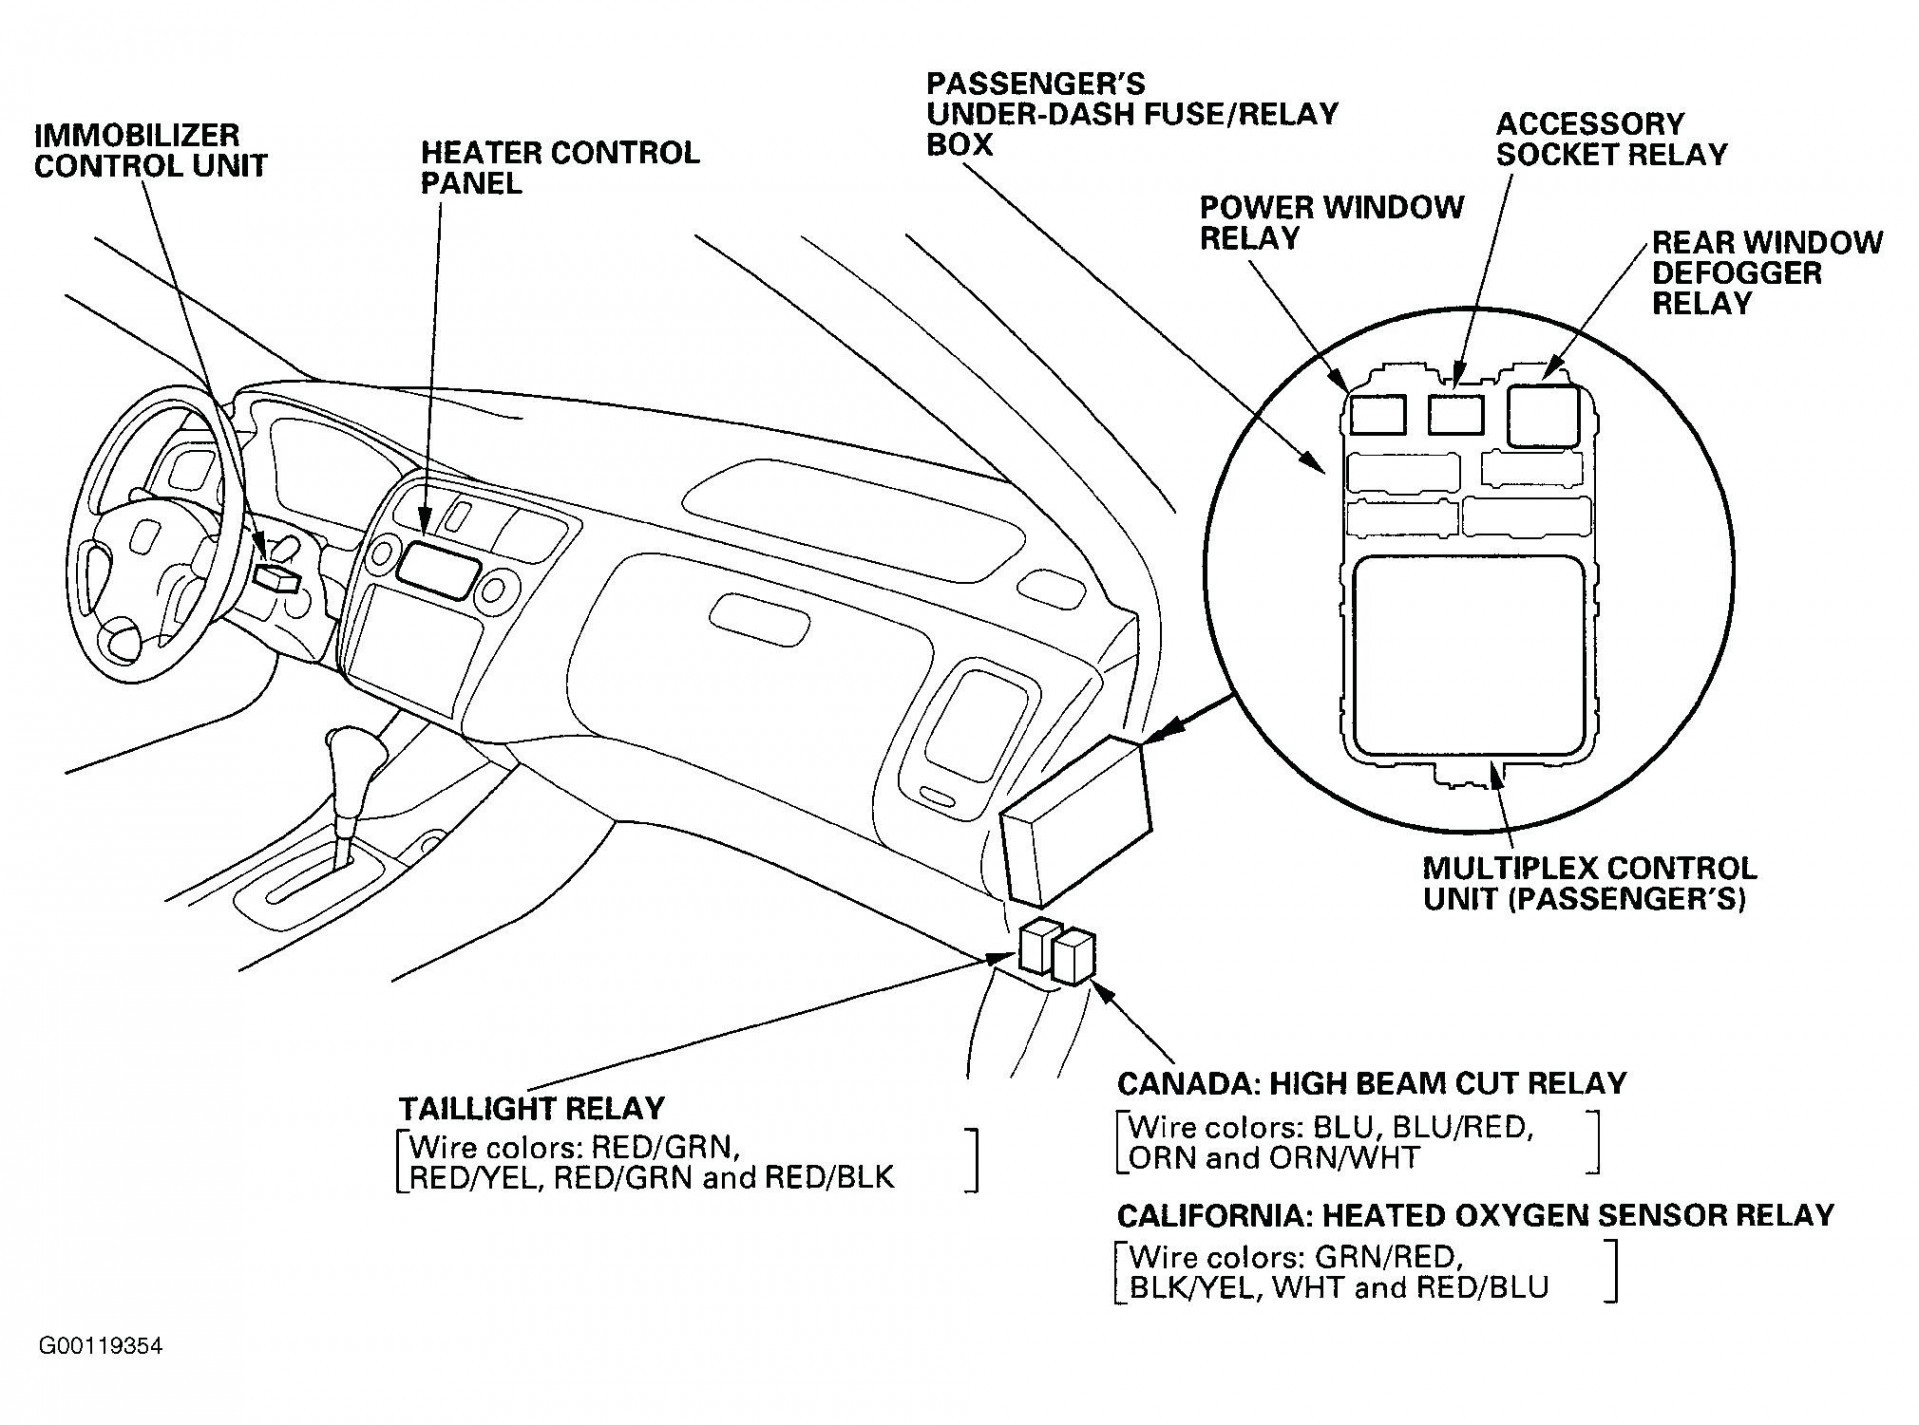 Ford Focus 2007 Fuse Diagram Wiring Library Zetec Engine 2002 2 0 Expert Category Circuit U2022